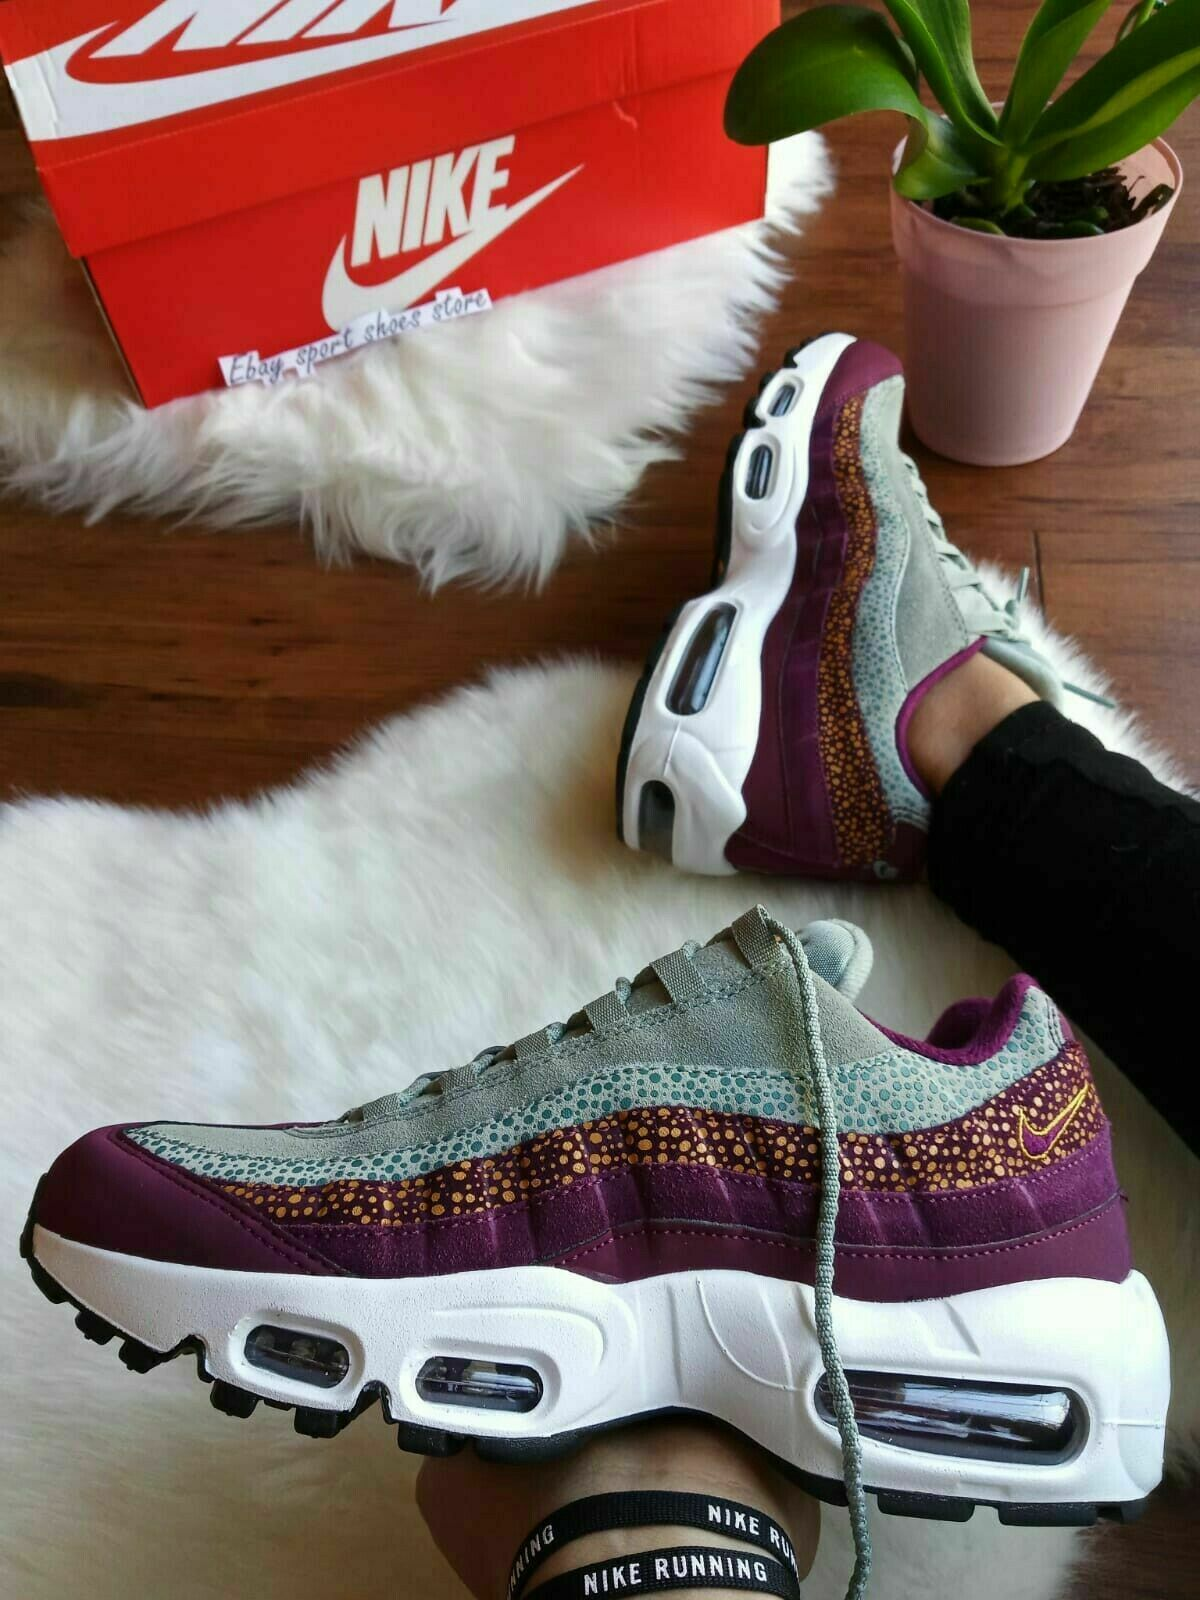 New Womens NIKE AIR MAX 95 Premium, Bordeaux (807443-601) UK 3, EU36,